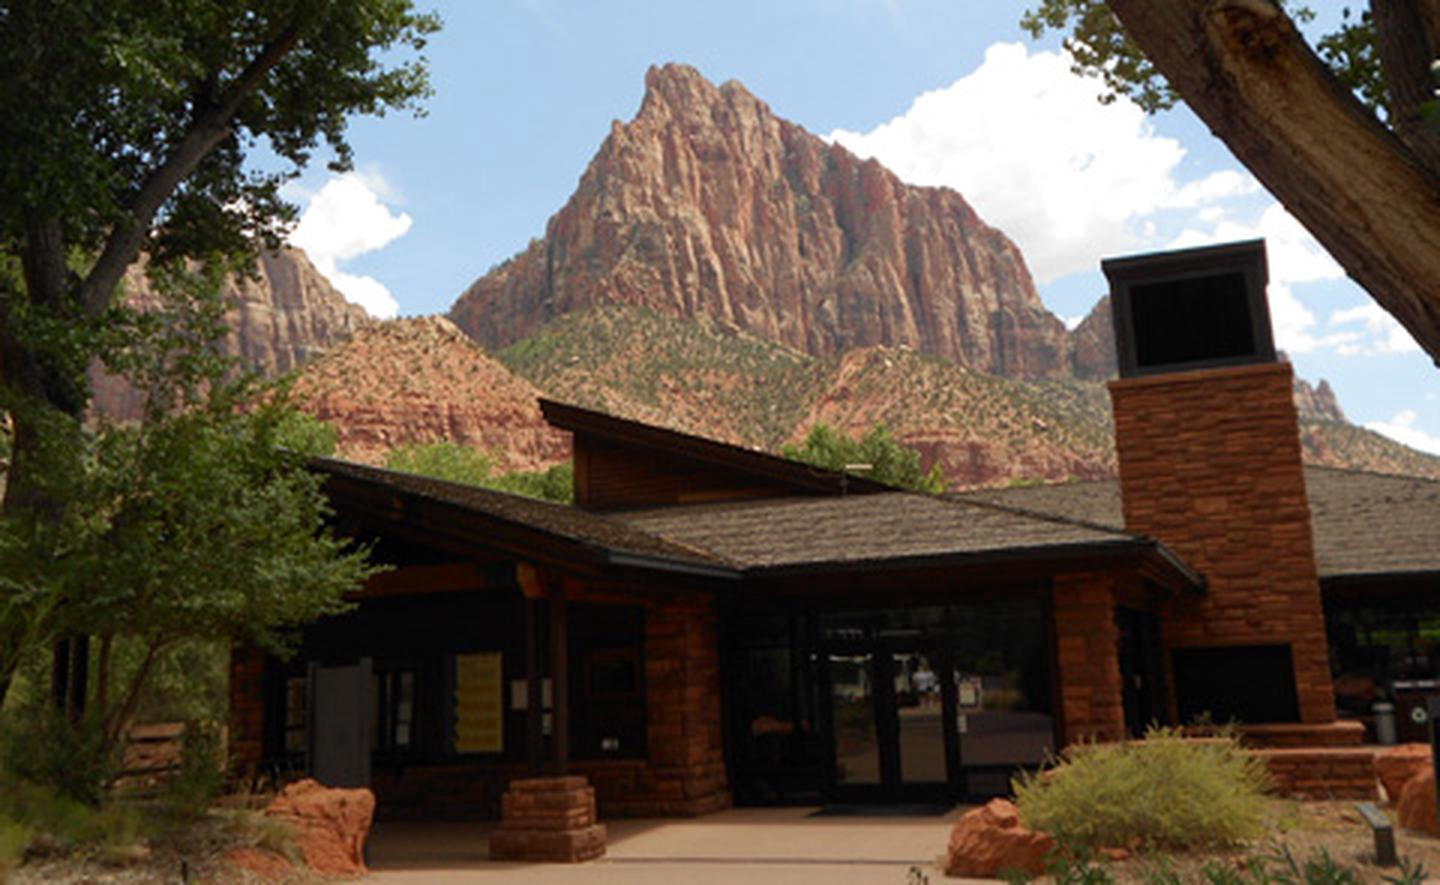 Zion Canyon Visitor CenterThe Zion Canyon Visitor Center sits near the sandstone peak known as the Watchman